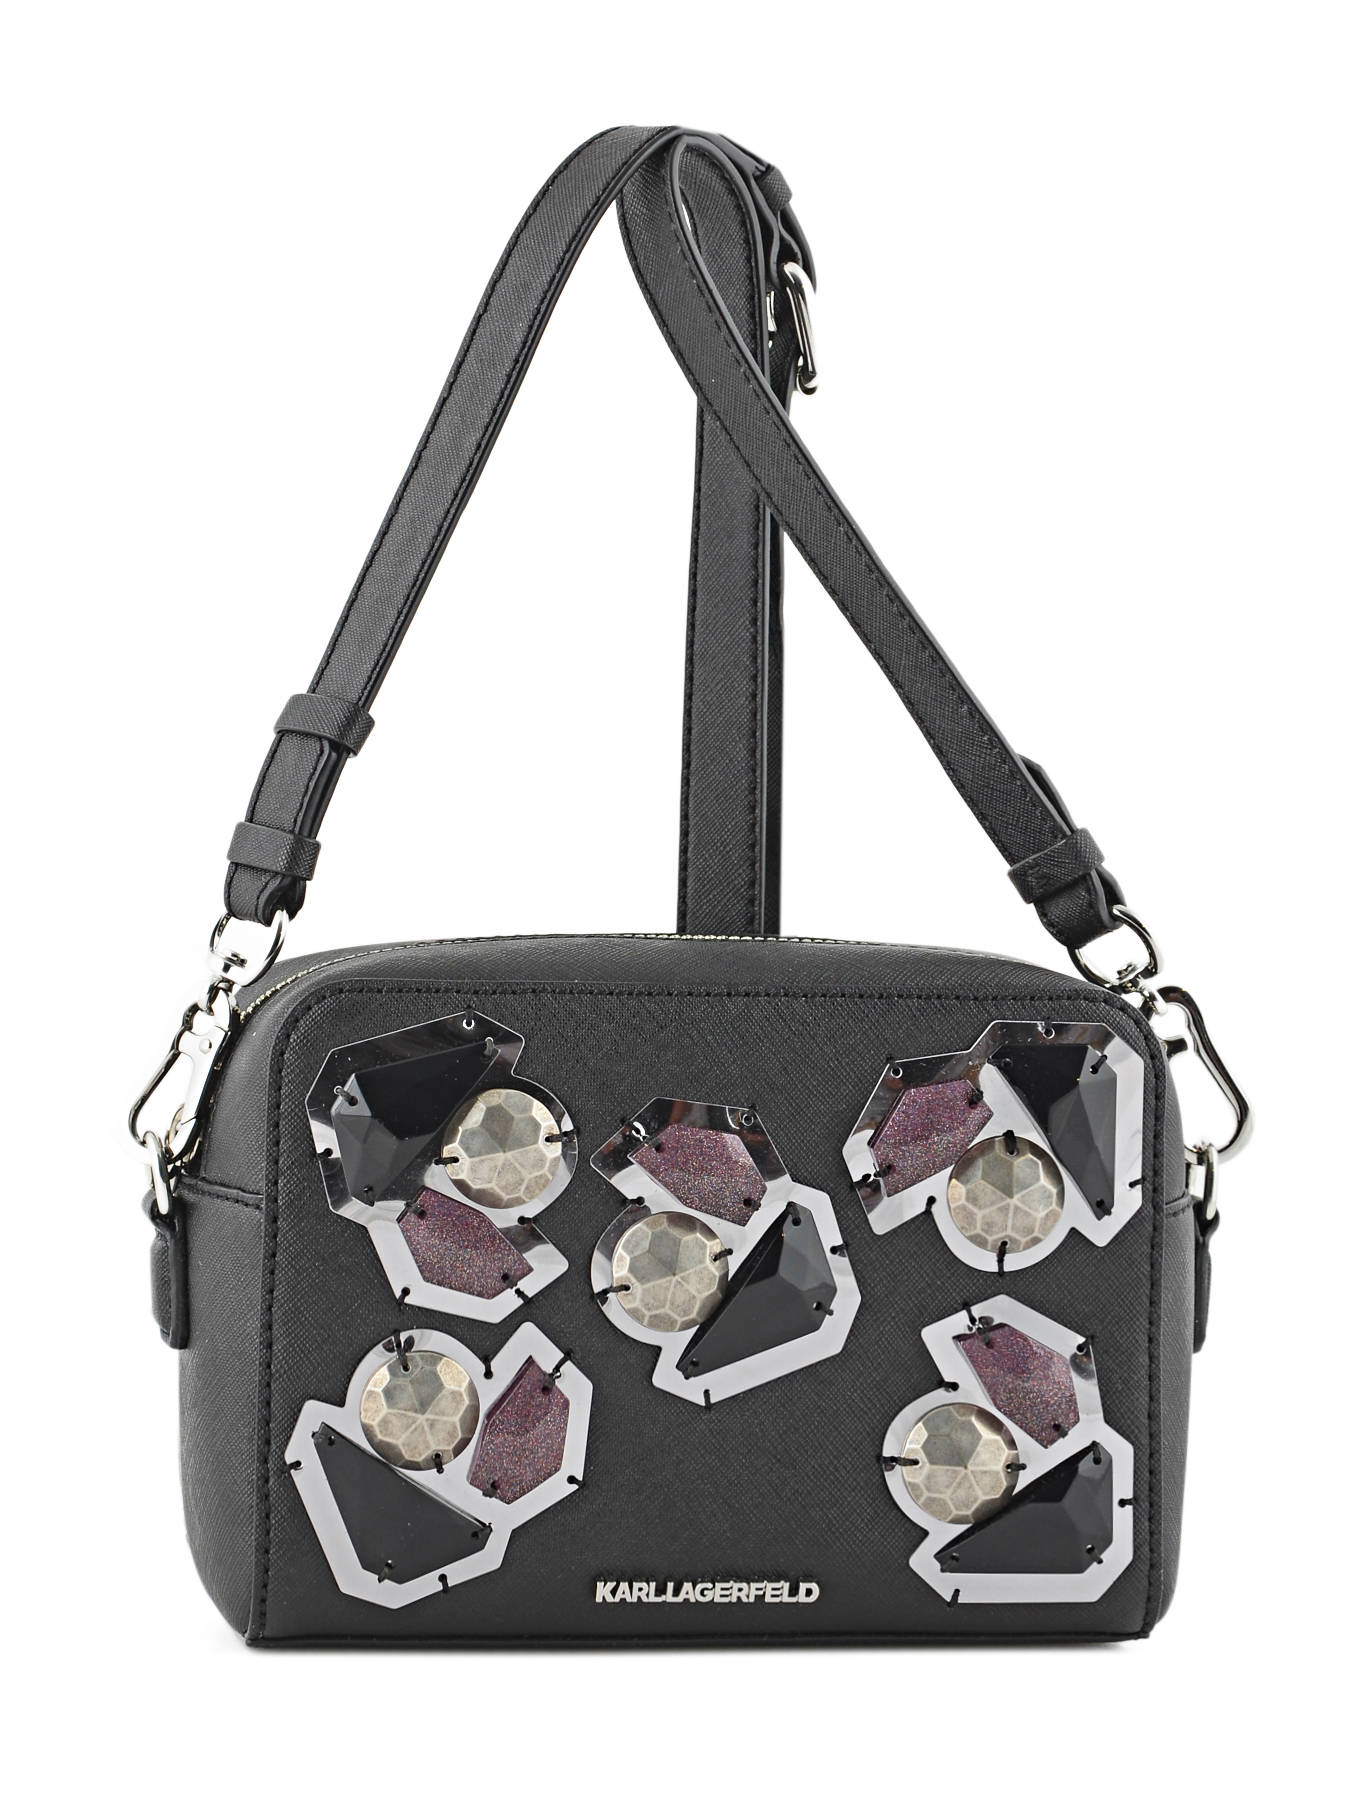 Sac Bandoulière K/klassik Diamonds Karl lagerfeld Noir k diamonds 76KW3079